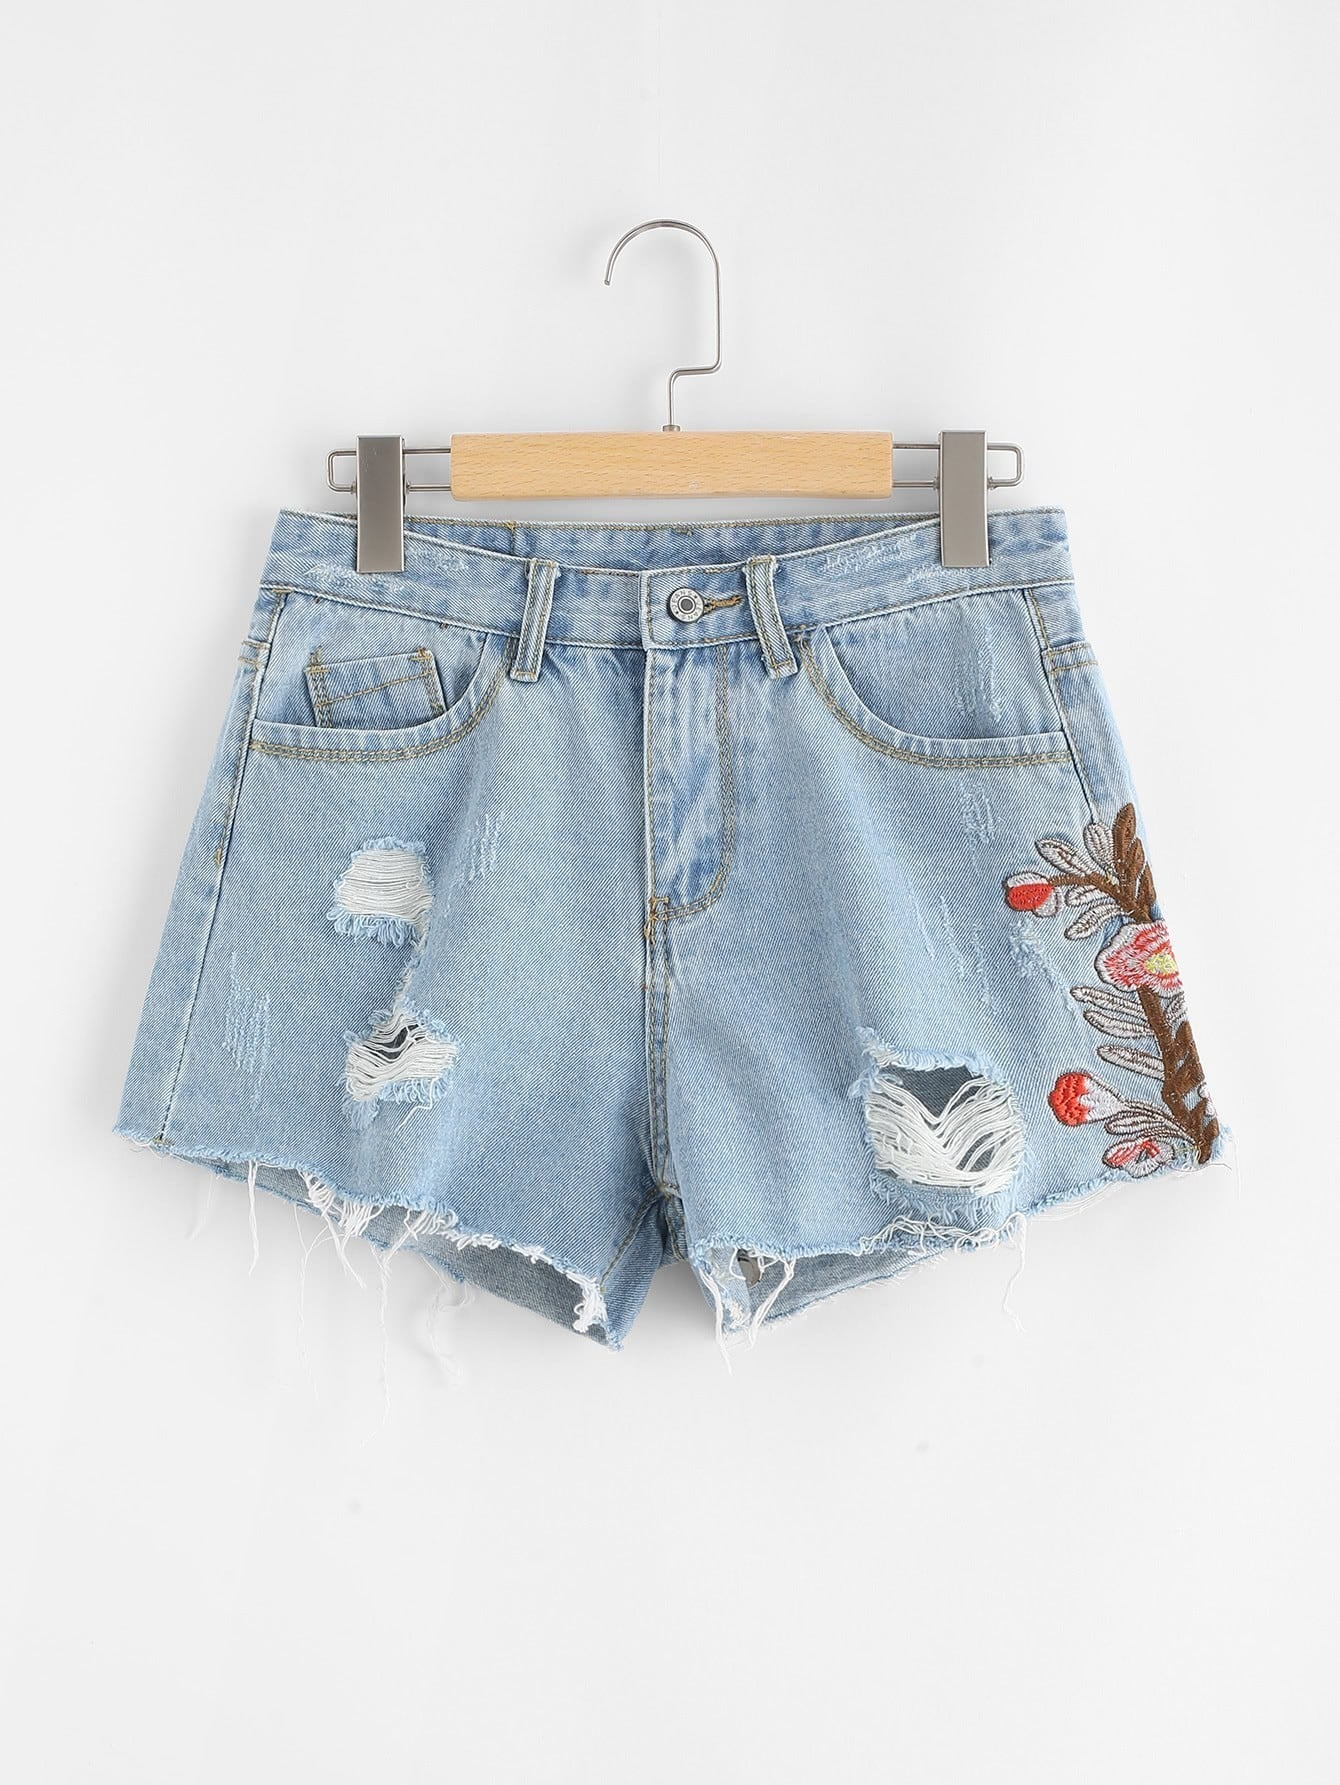 Flower Embroidered Raw Hem Ripped Denim Shorts raw hem stripe side ripped denim shorts